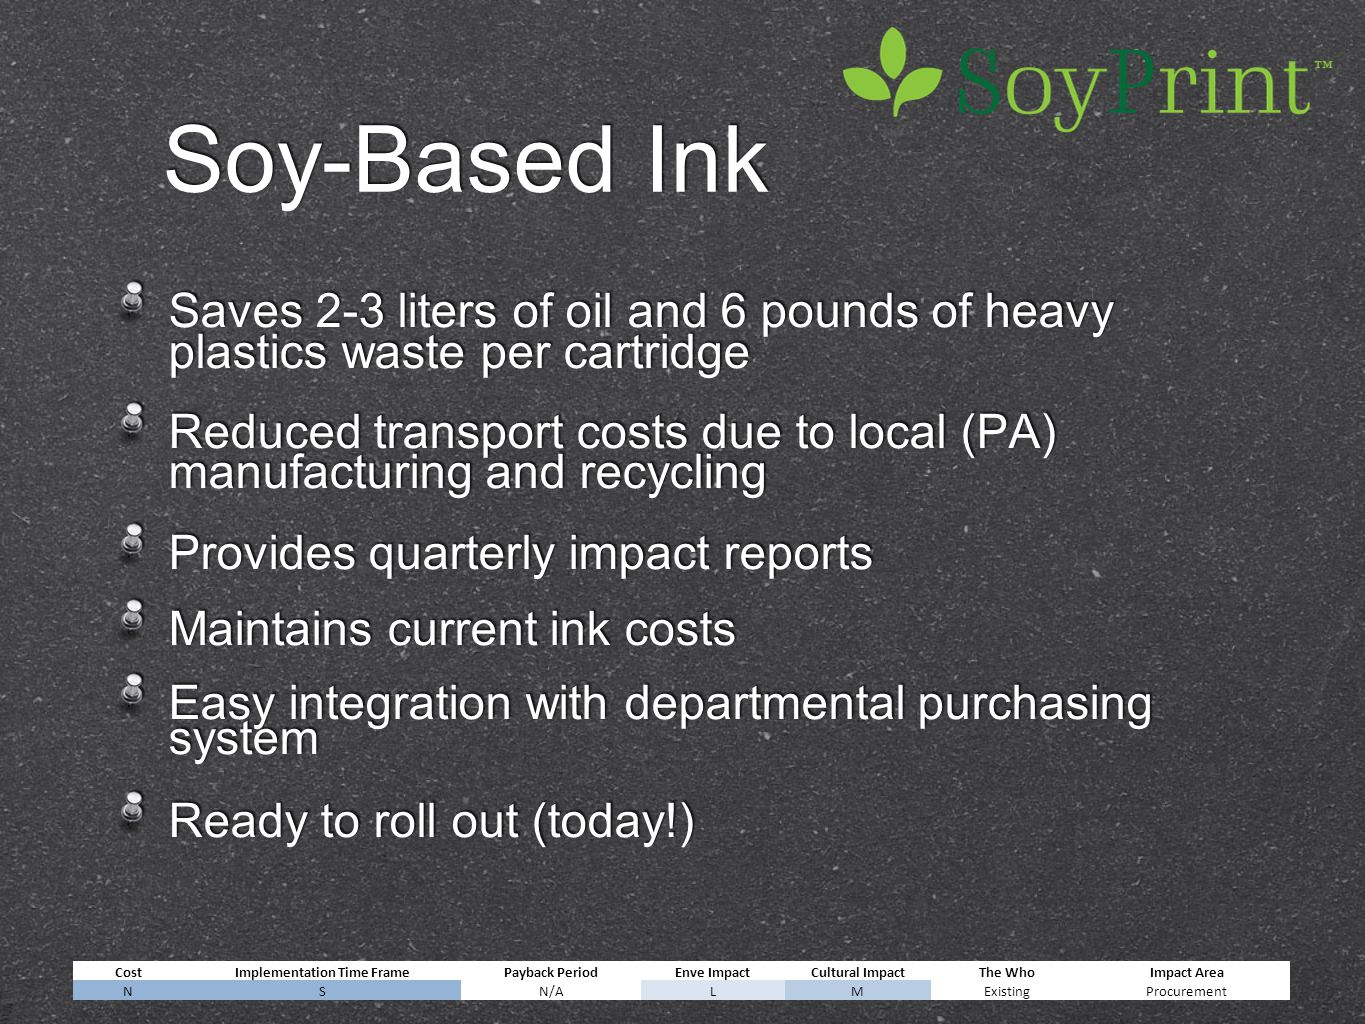 Soy-Based Ink Saves 2-3 liters of oil and 6 pounds of heavy plastics waste per cartridge Reduced transport costs due to local (PA) manufacturing and recycling Provides quarterly impact reports Maintains current ink costs Easy integration with departmental purchasing system Ready to roll out (today!) Saves 2-3 liters of oil and 6 pounds of heavy plastics waste per cartridge Reduced transport costs due to local (PA) manufacturing and recycling Provides quarterly impact reports Maintains current ink costs Easy integration with departmental purchasing system Ready to roll out (today!) CostImplementation Time FramePayback PeriodEnve ImpactCultural ImpactThe WhoImpact Area NSN/ALMExistingProcurement